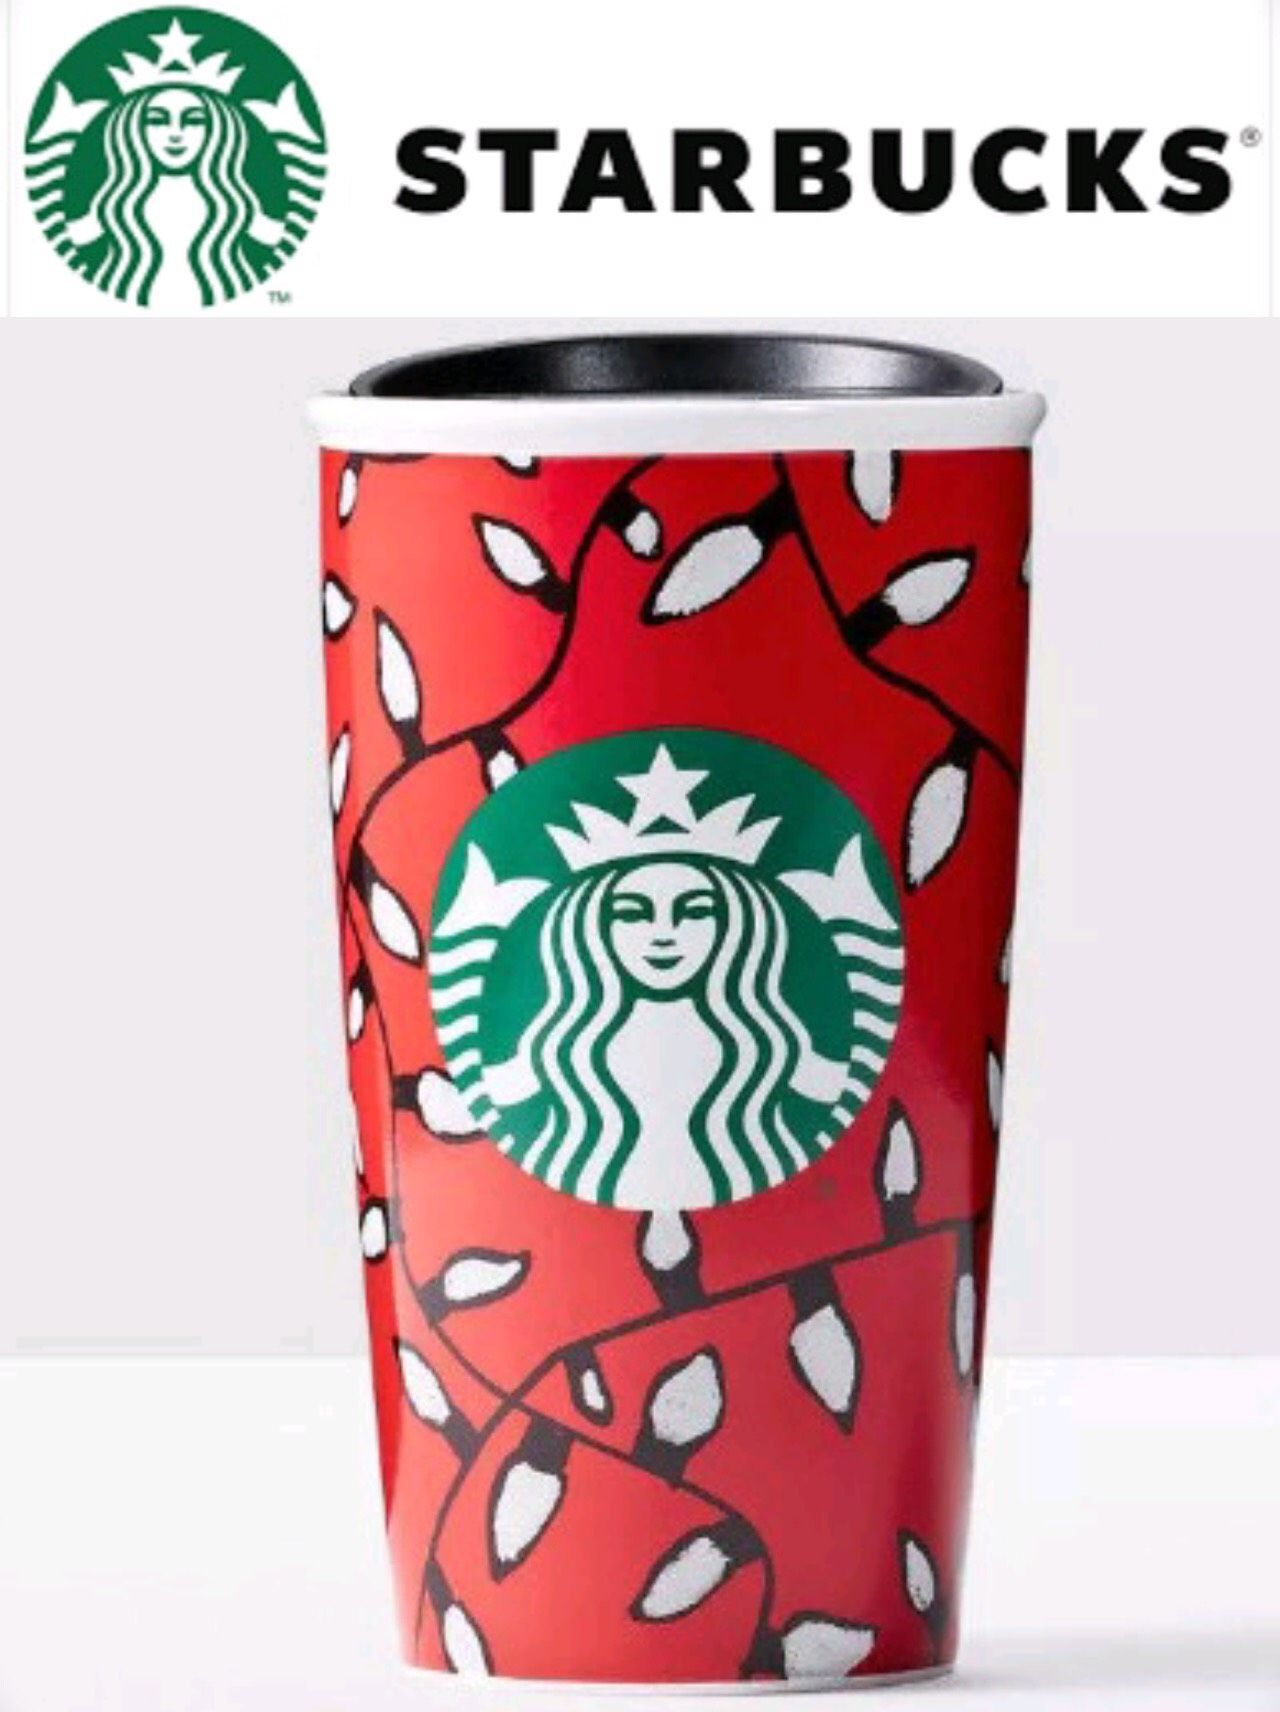 New without box. 2016 STARBUCKS Red ceramic double wall